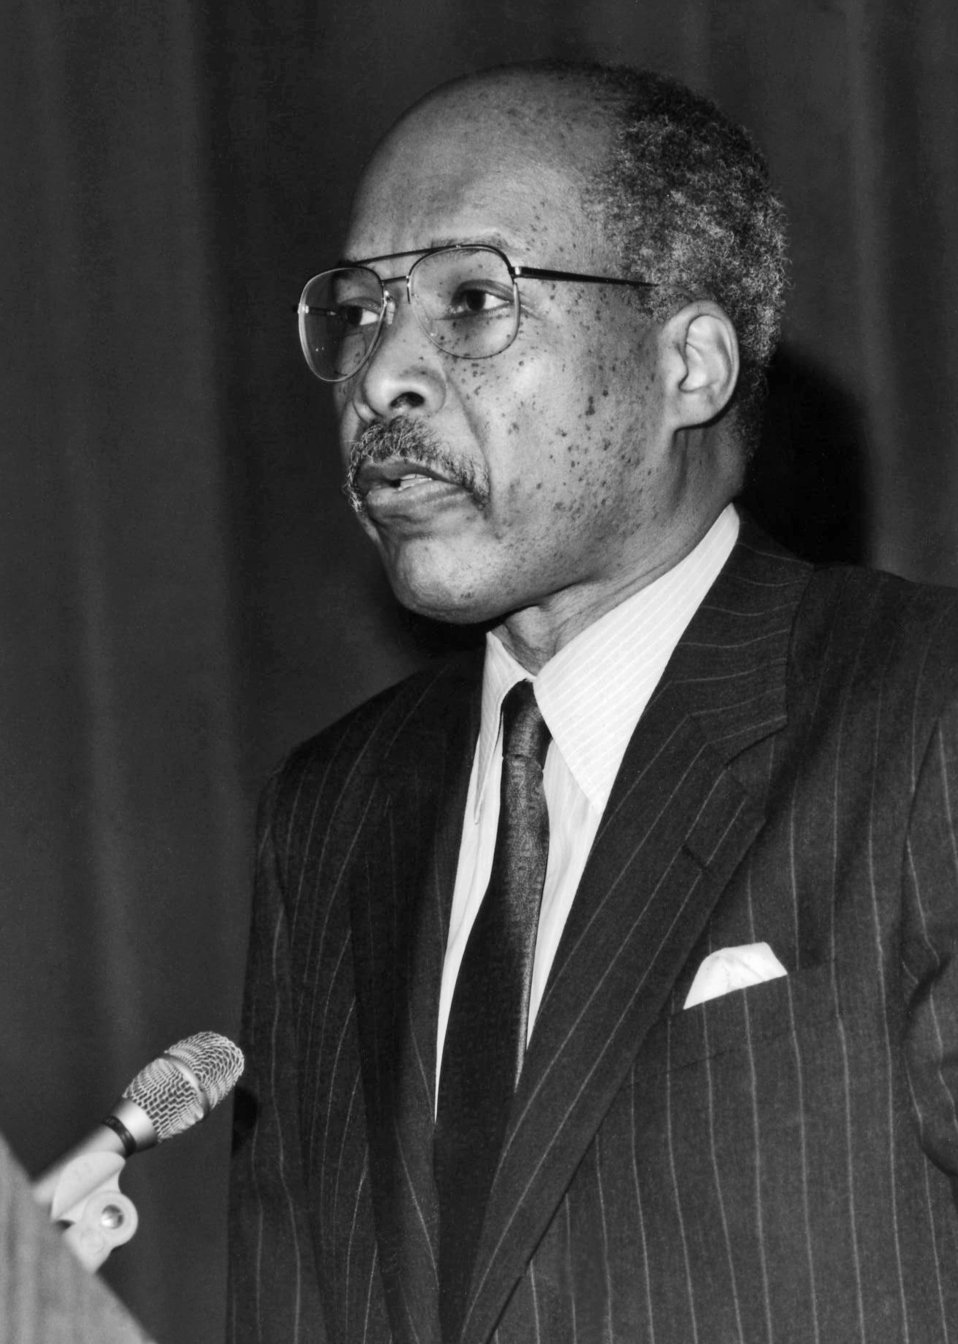 This was Dr. Louis W. Sullivan, the newly appointed Health and Human Services Secretary (1989 - 1993), shown here as he was addressing perso